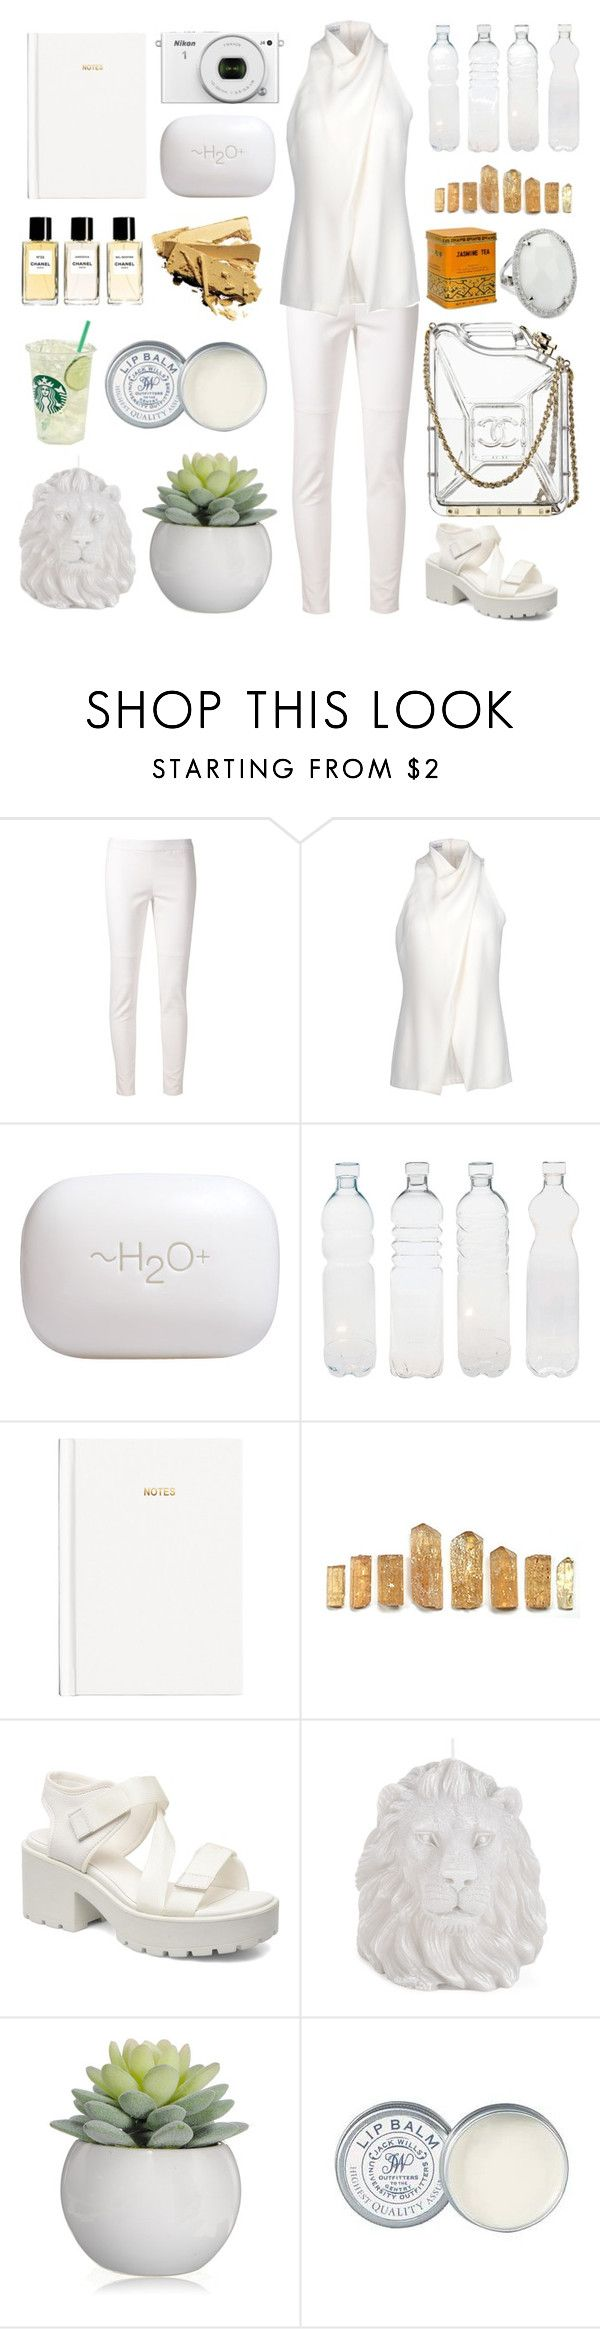 """""""#15"""" by zelonichai ❤ liked on Polyvore featuring 10 Crosby Derek Lam, Alberta Ferretti, H2O+, Seletti, H&M, Chanel, Guide London, Zara Home, Jack Wills and Nicky Hilton"""